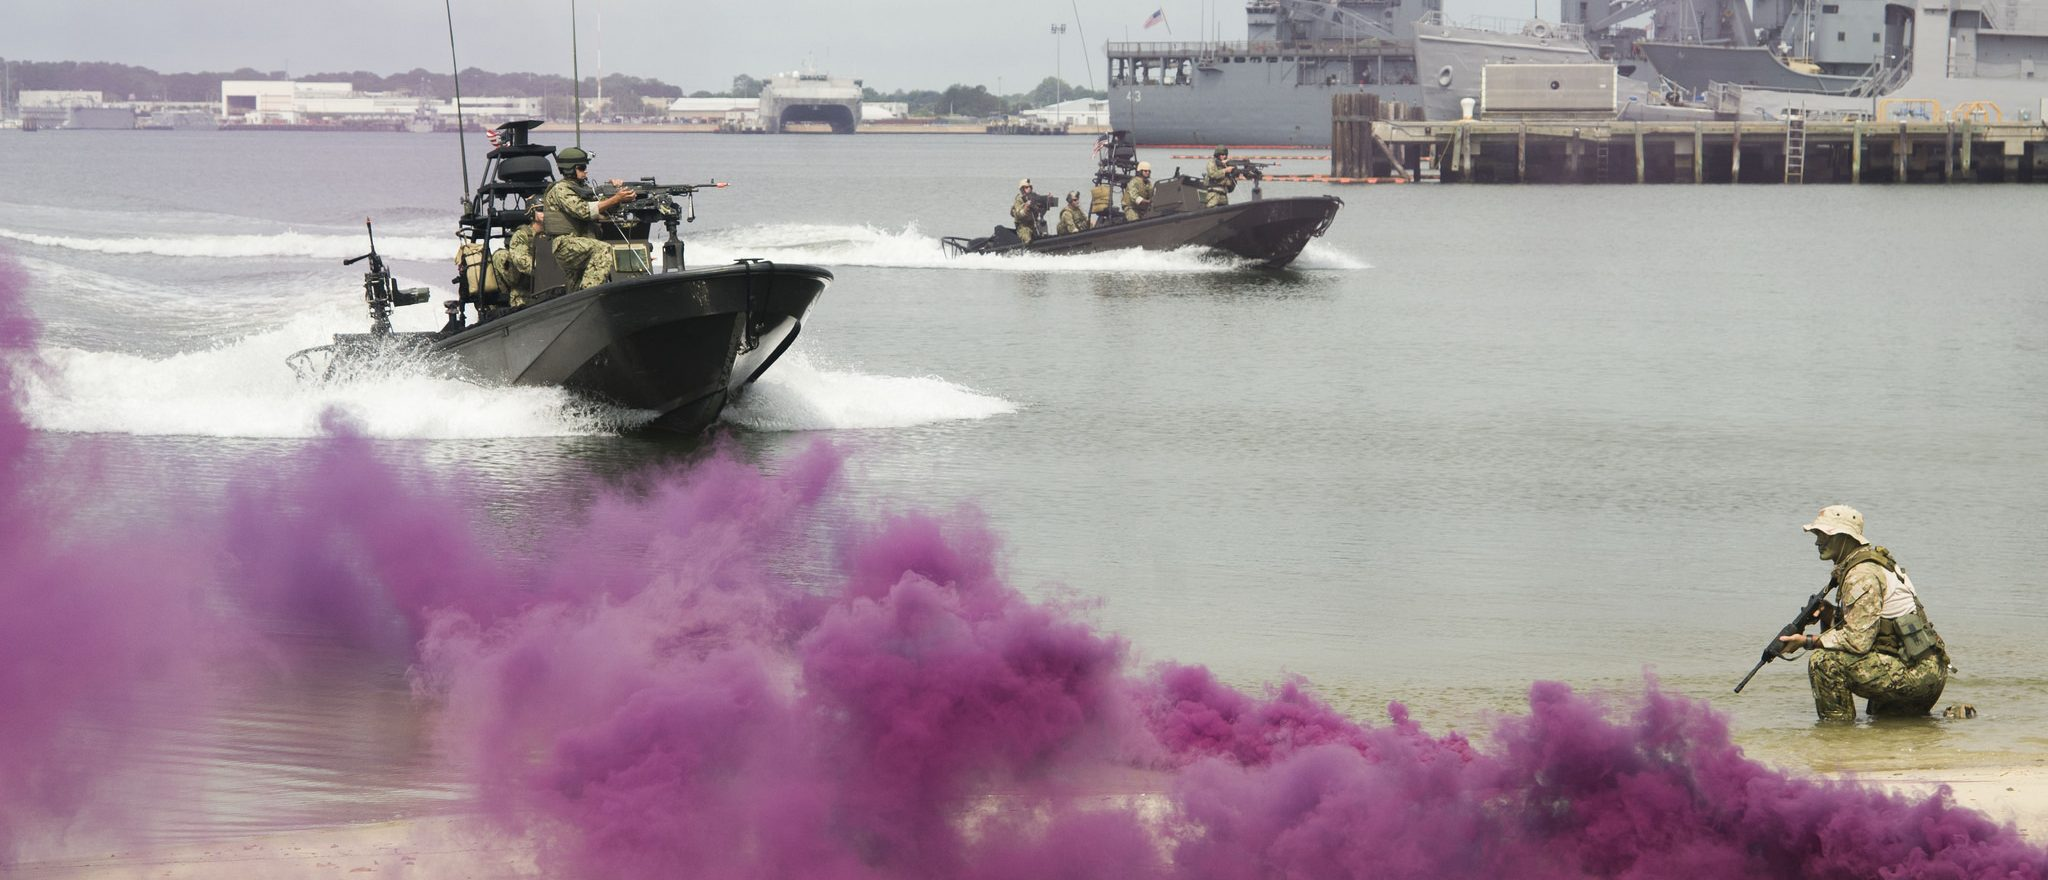 Members of SEAL Team 18 perform a demonstration at Joint Expeditionary Base Little Creek for the 2014 Navy Employer Recognition Event. (US Navy official)